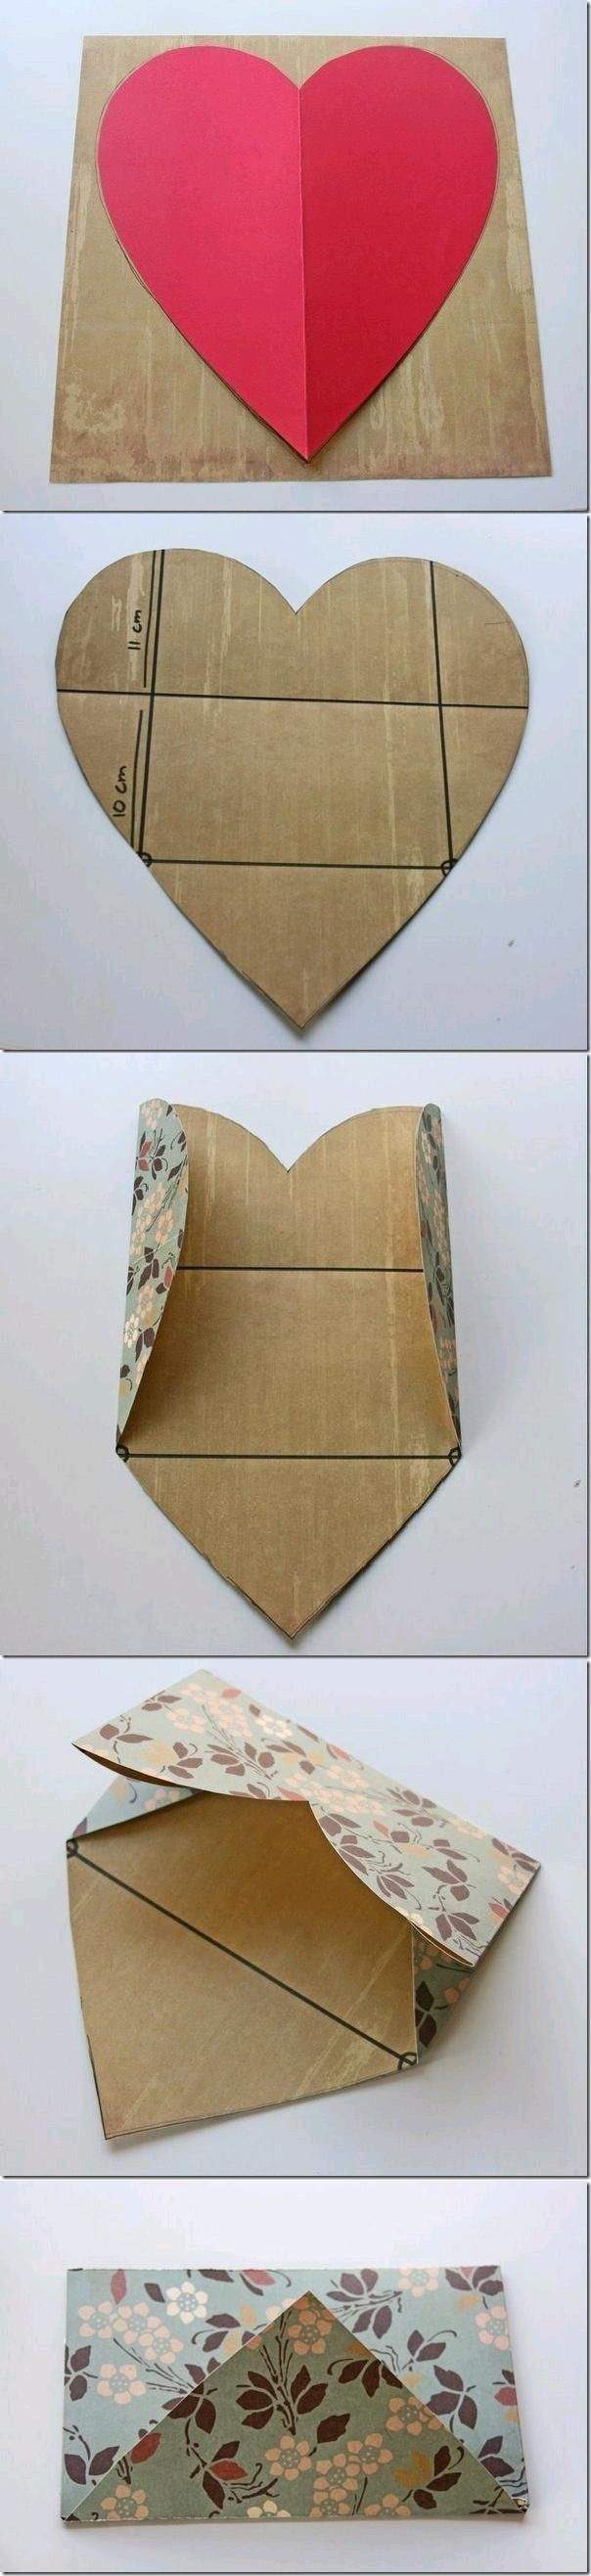 DIY Envelope from a Heart: Heart Envelope, Ideas, Diy Heart, Envelopes, Gift Wrapping, Valentine, Crafts